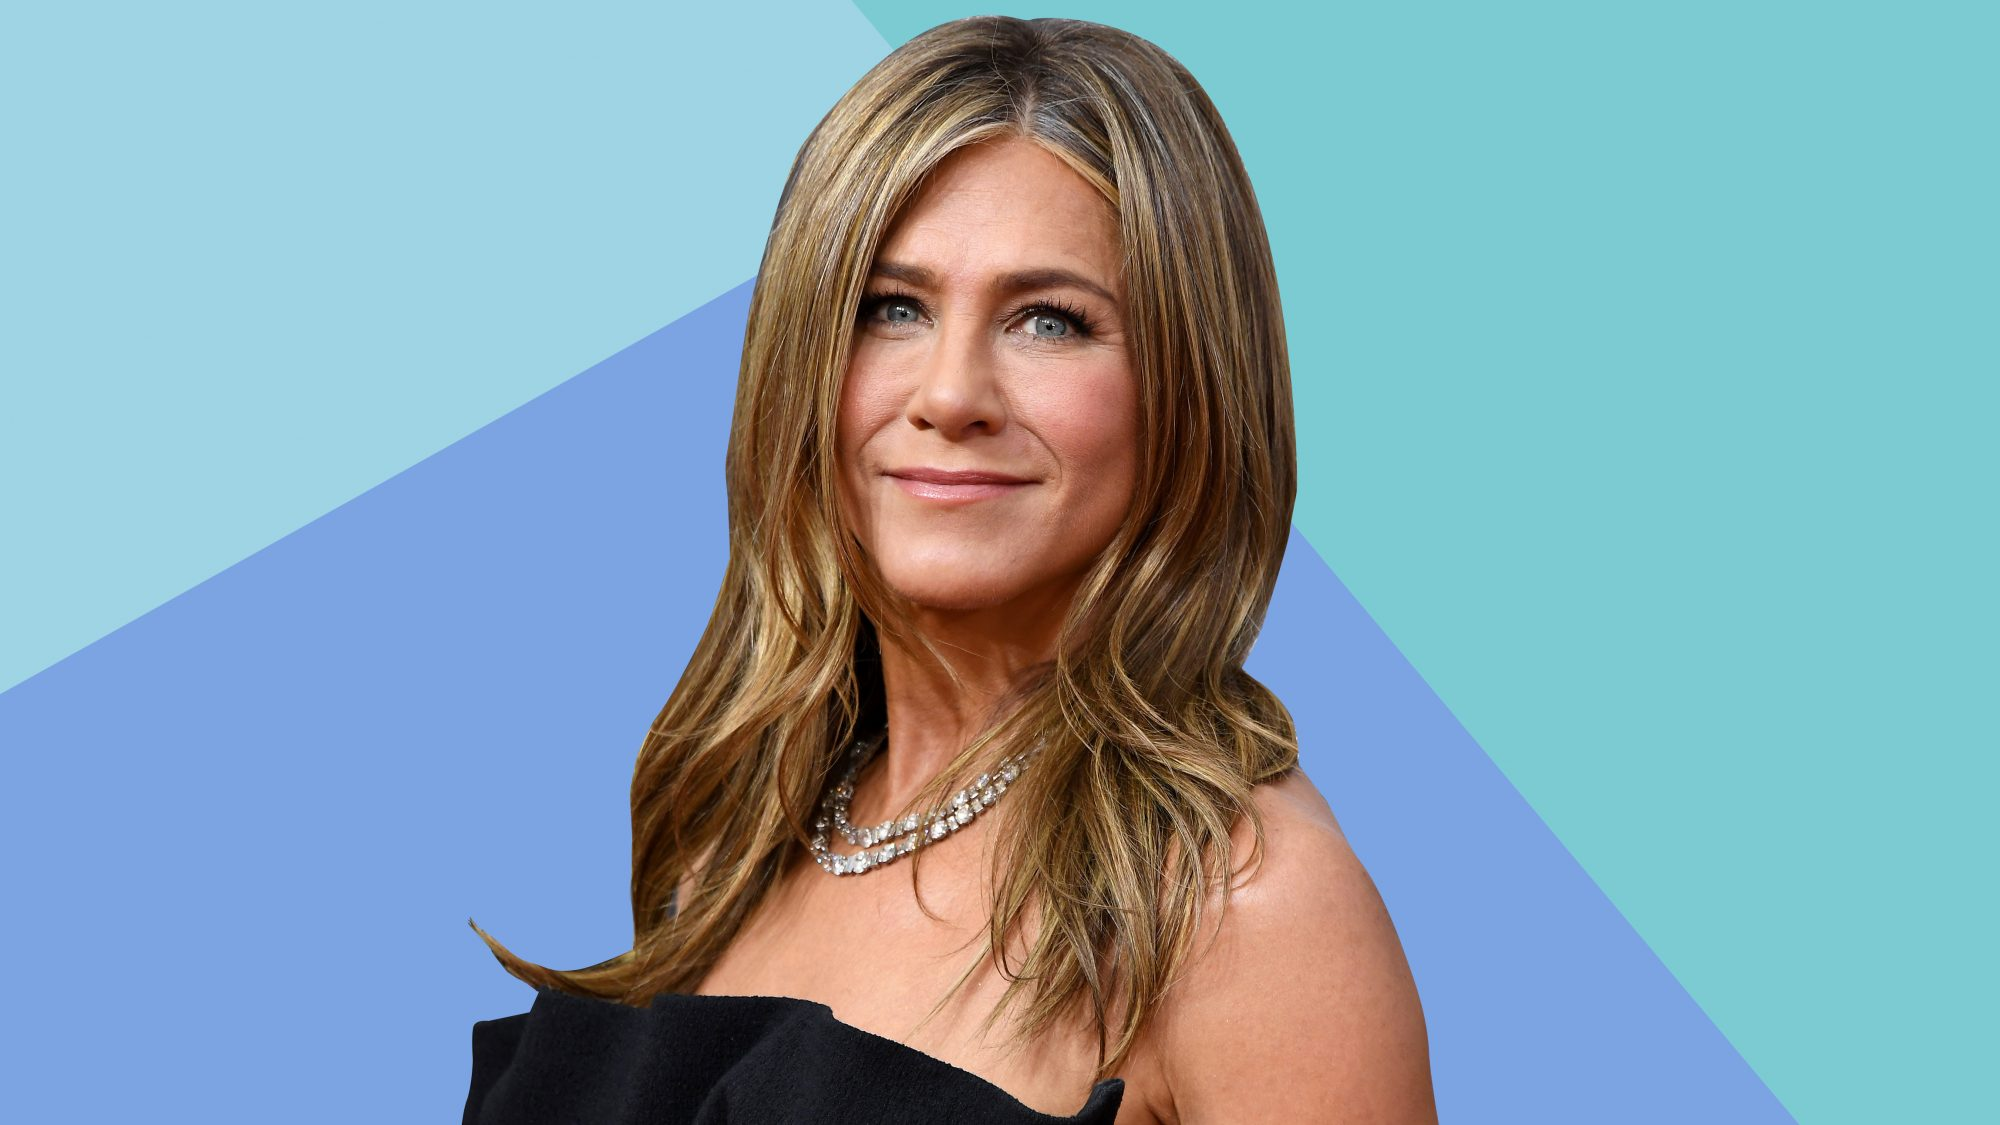 Jennifer Aniston: top hair trends of the 2020s